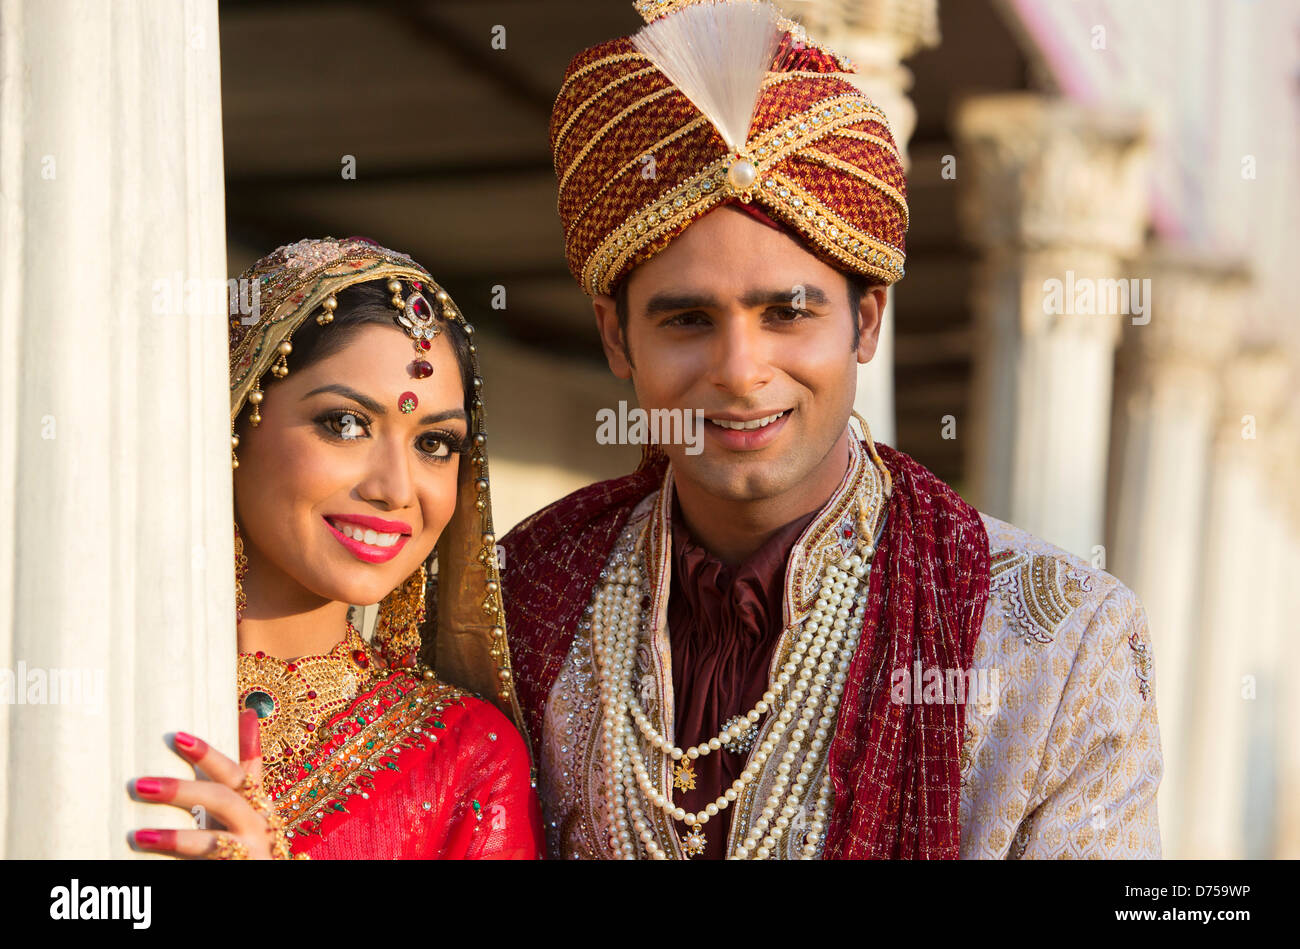 Indian bride and groom in traditional wedding dress Stock Photo ...